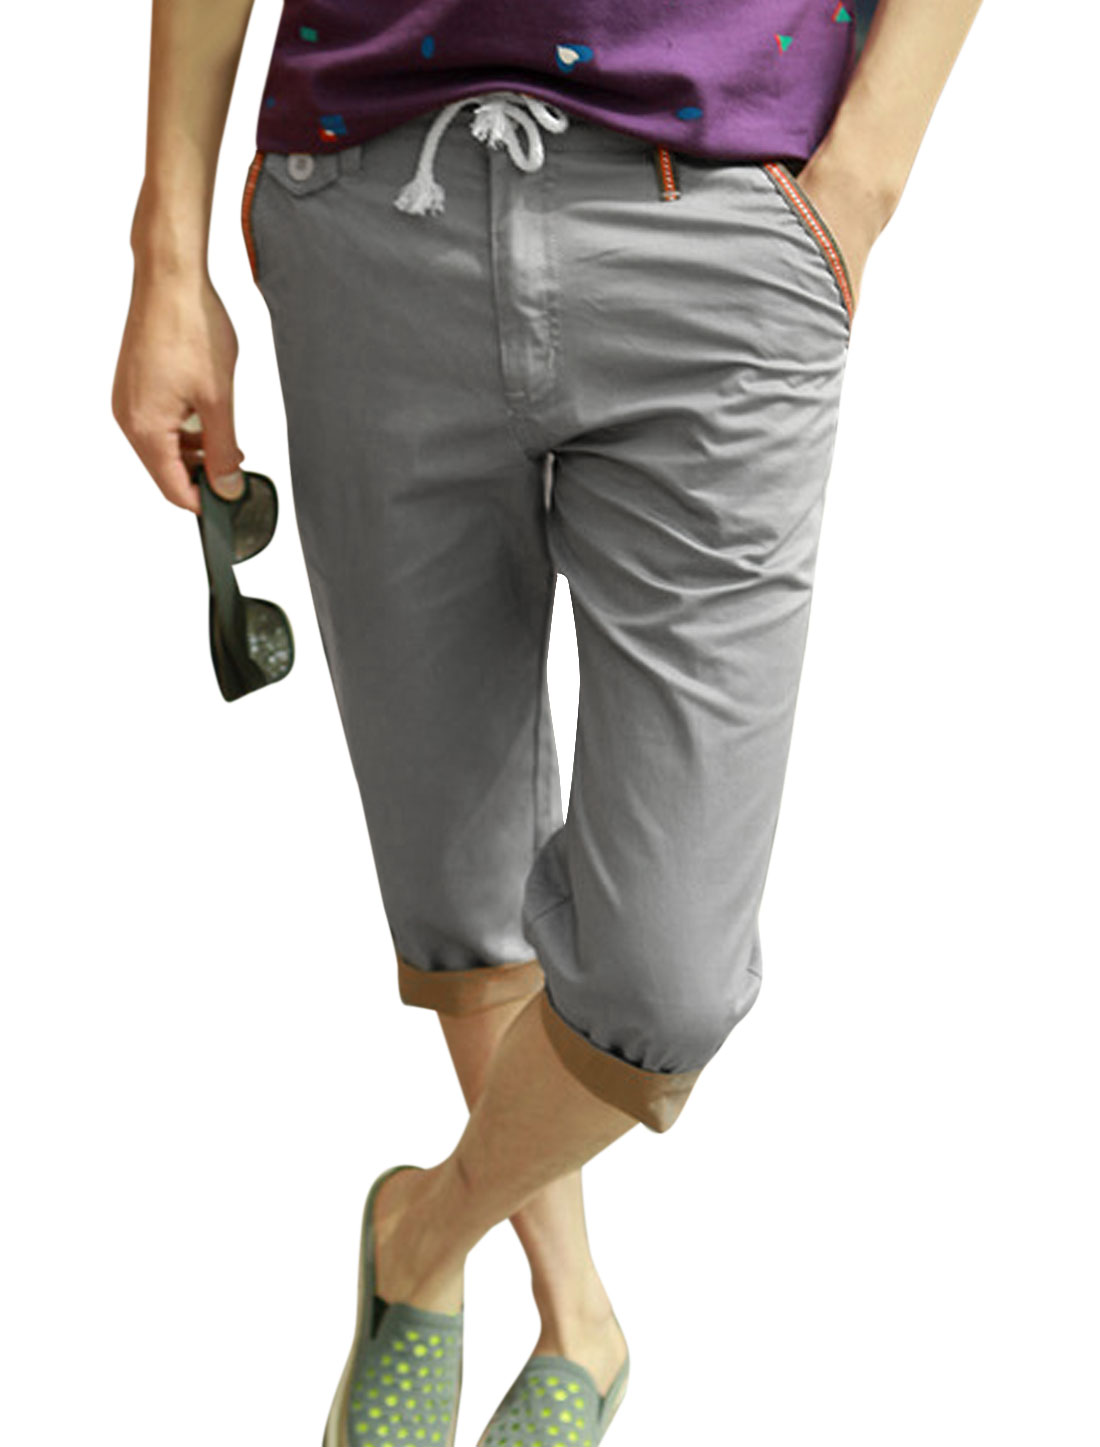 Man One Button Up Belt Loop Leisure Stylish Capri Trousers Cool Gray W30